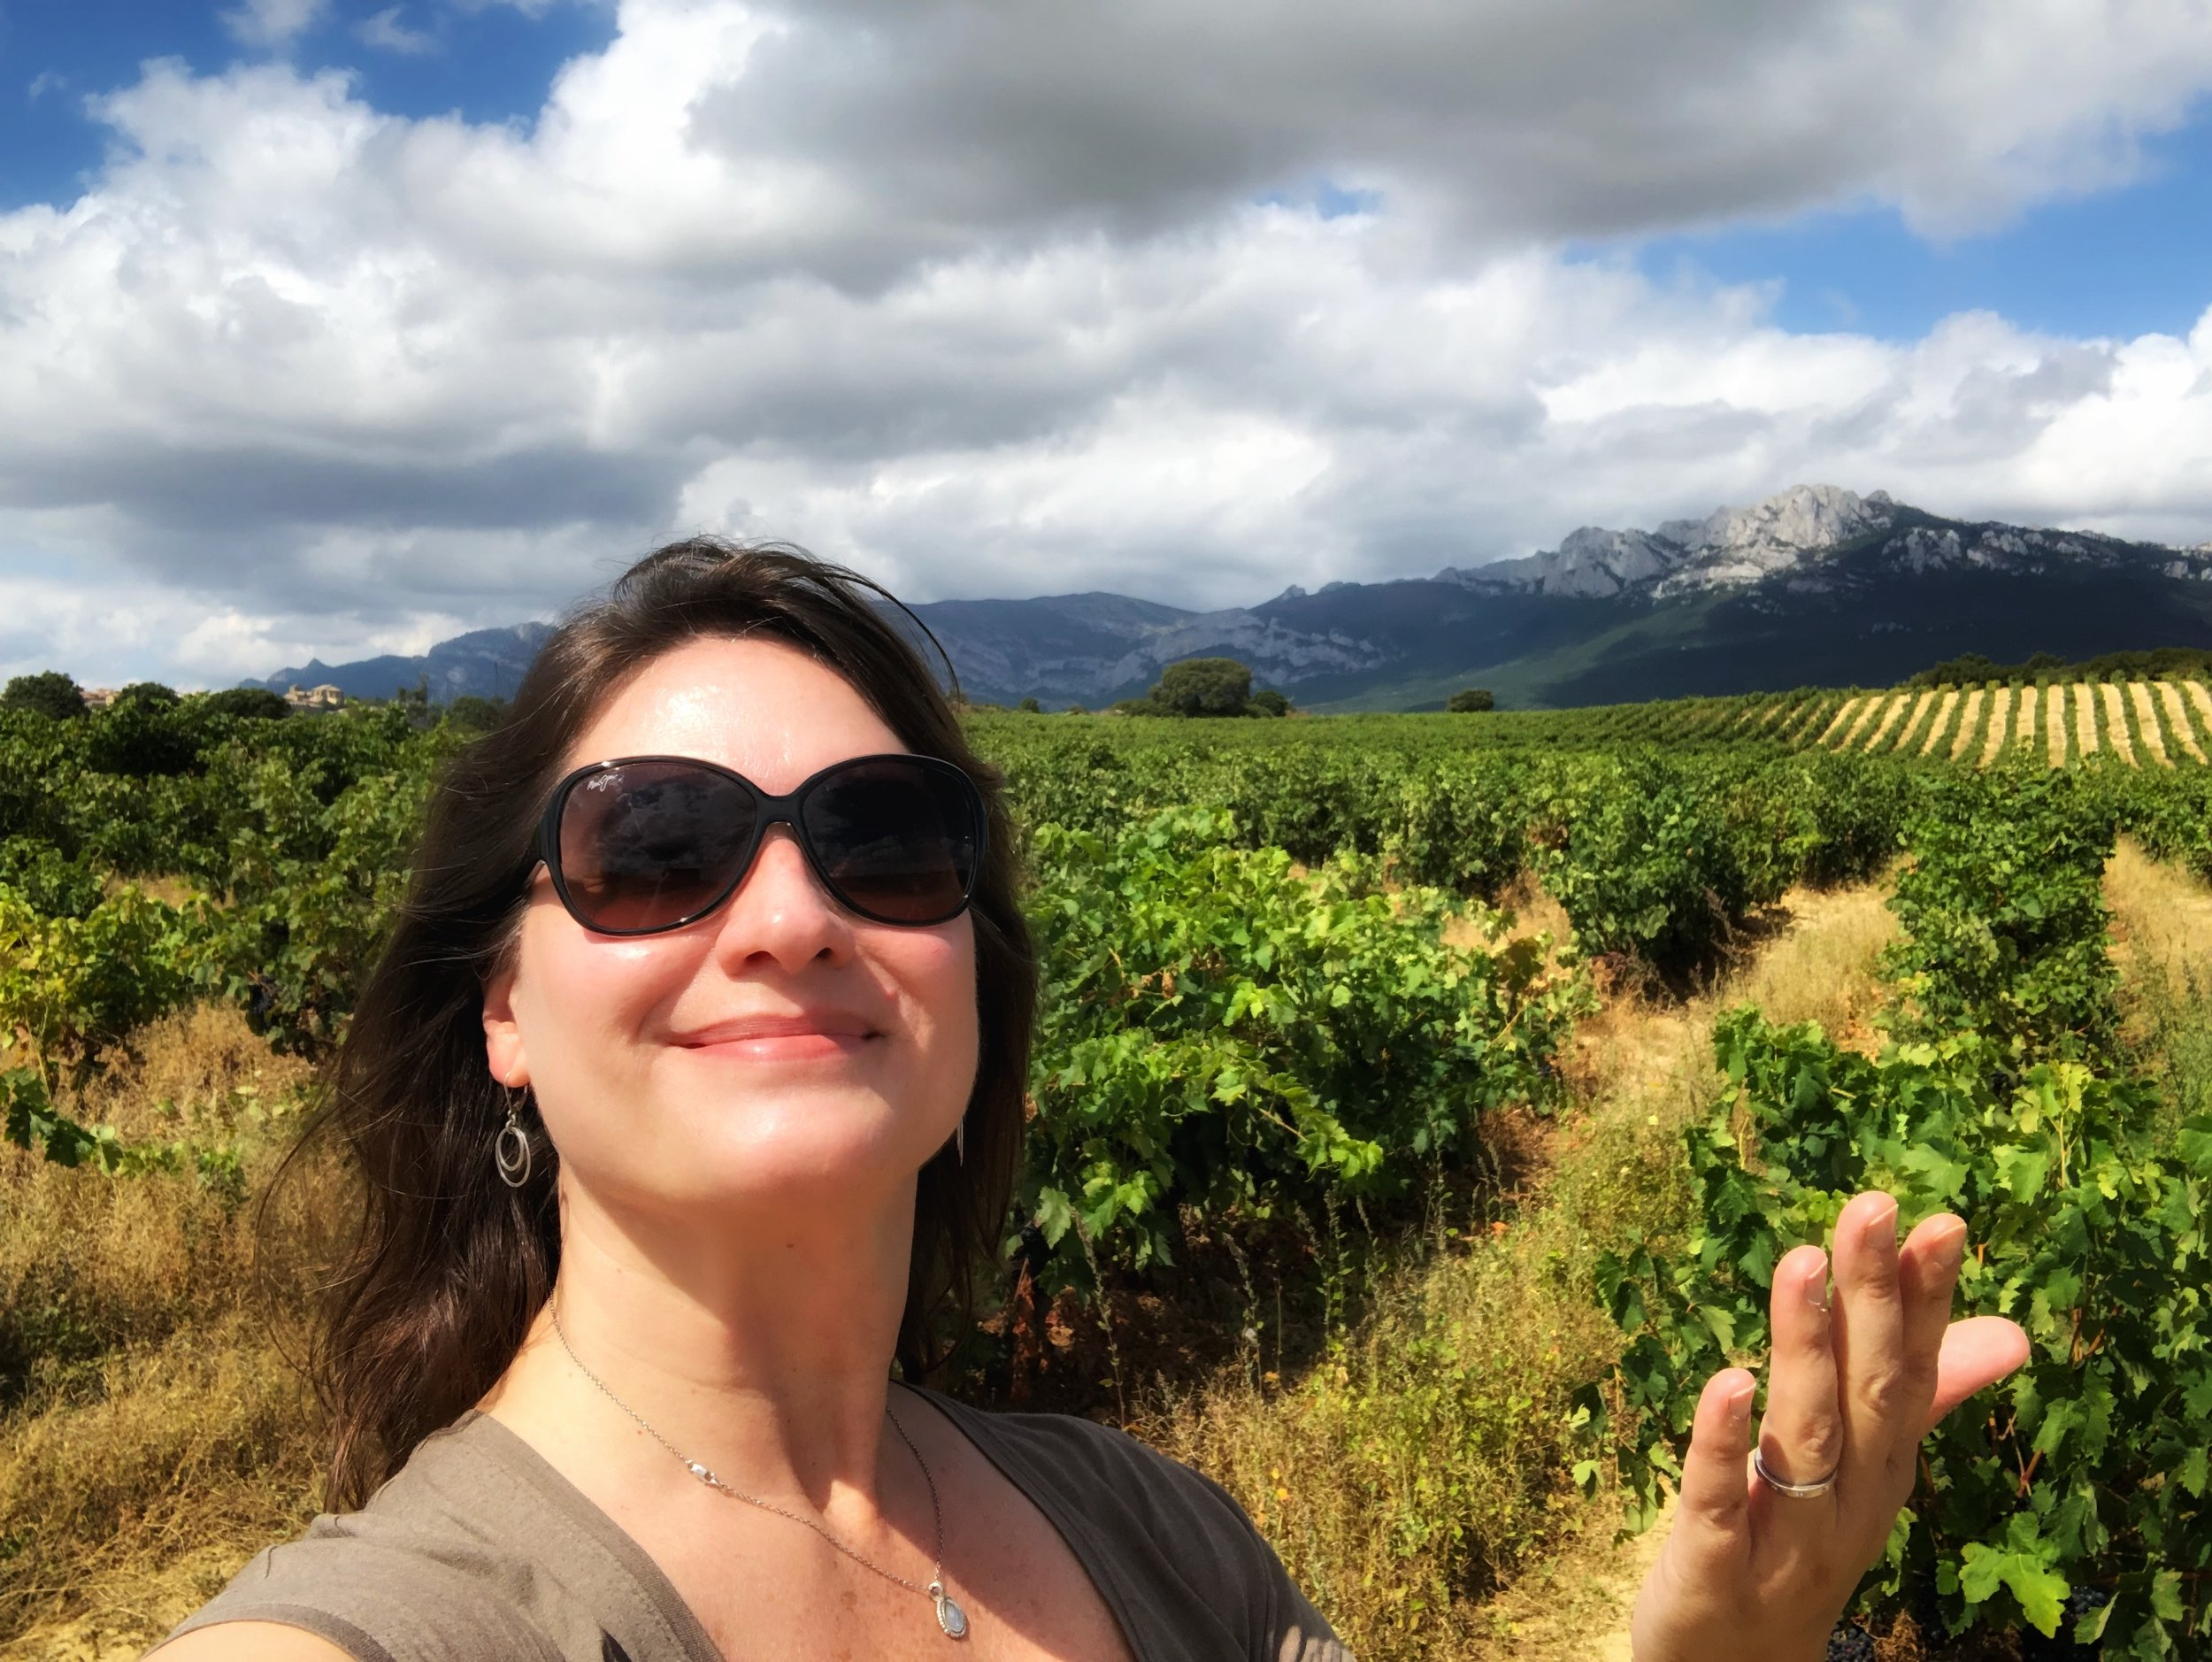 Blissing out in Rioja Alavesa, Spain